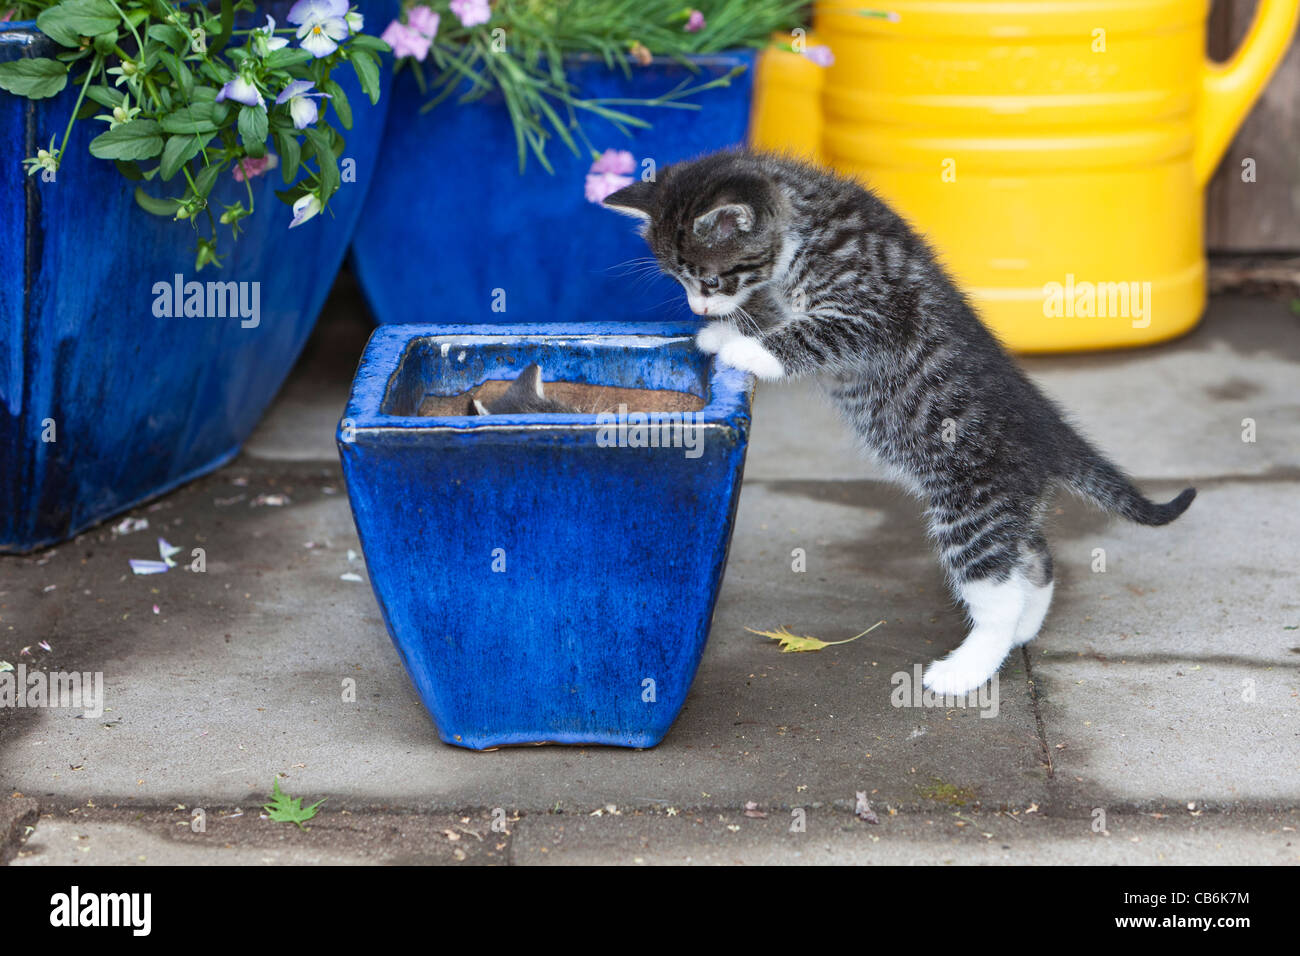 Kittens, two playing hide and seek in in plant pot, Lower Saxony, Germany - Stock Image